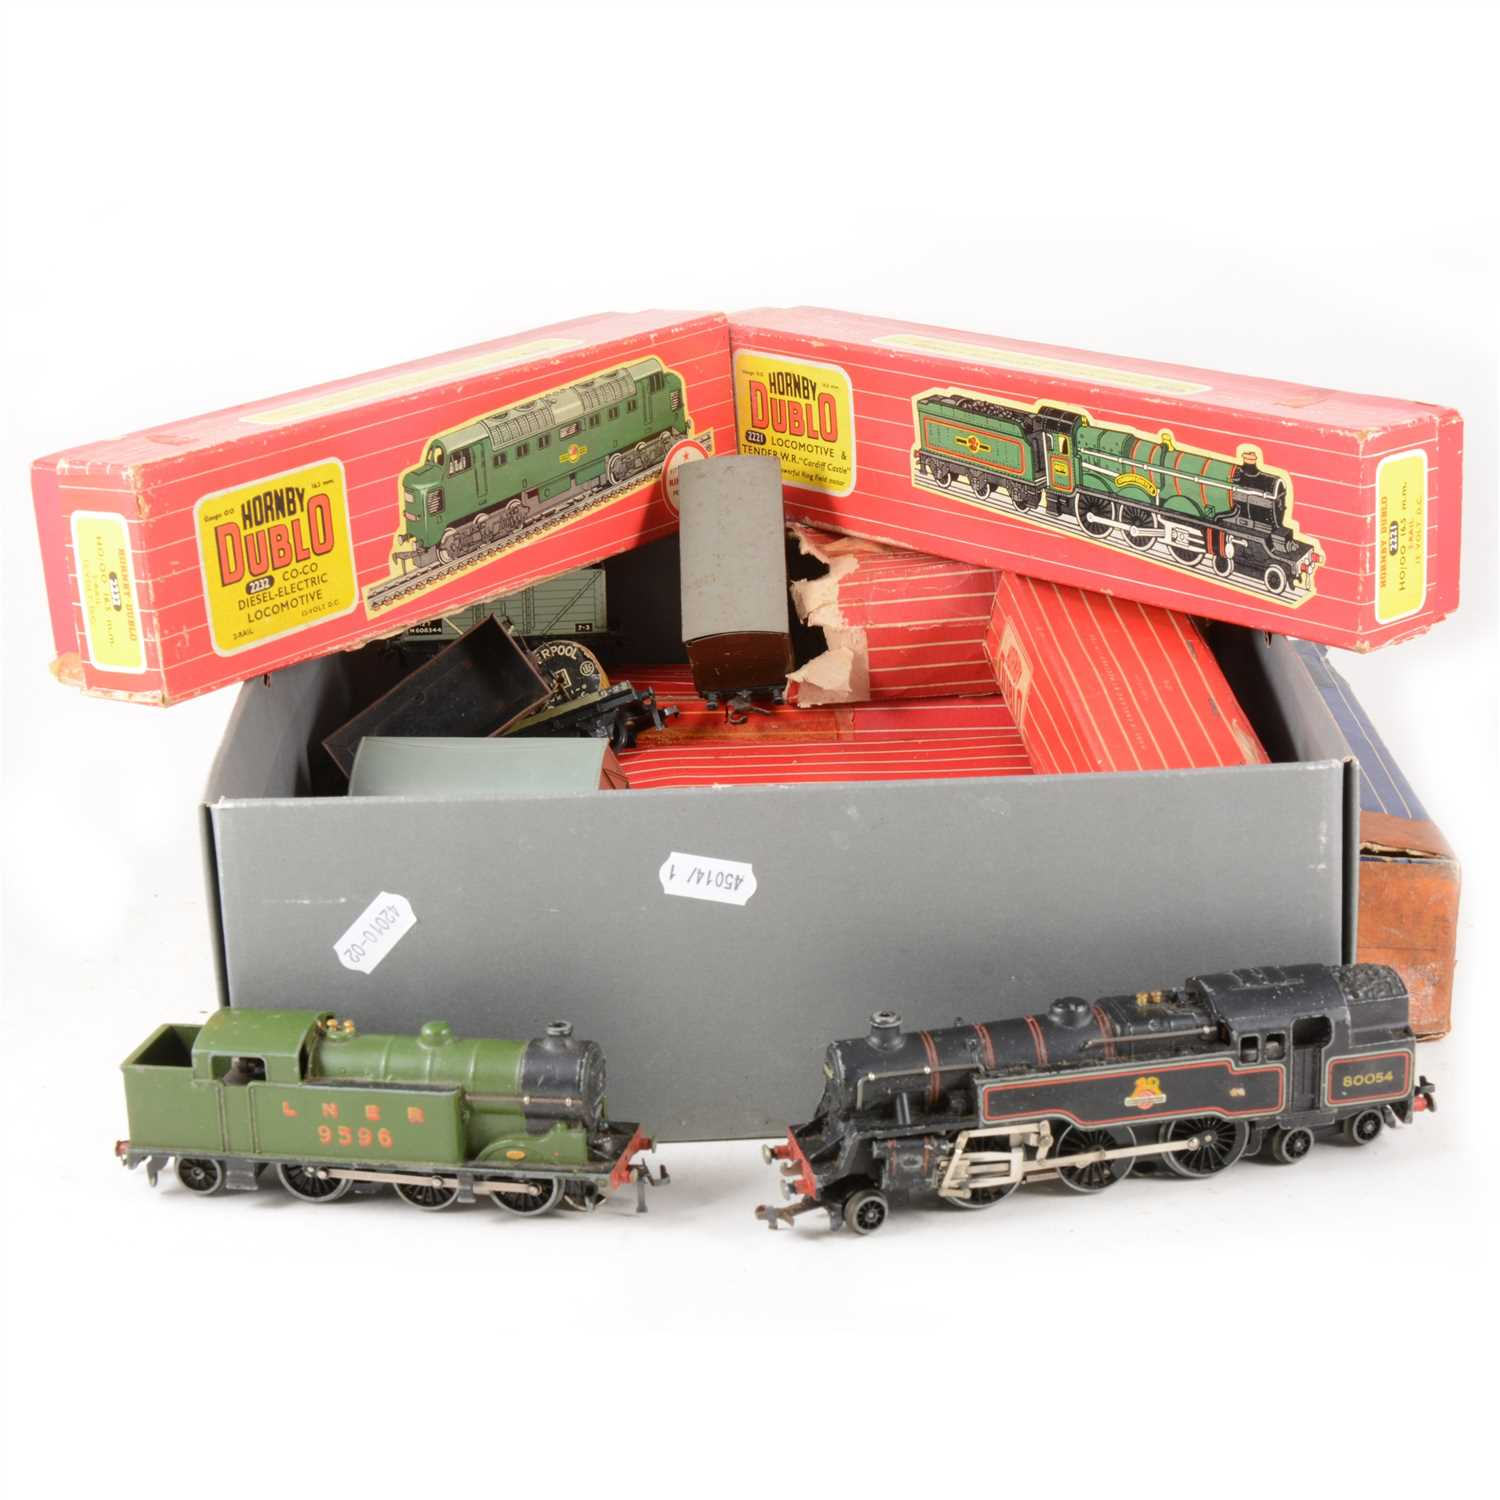 Lot 23-Hornby Dublo OO model railways; including four locomotives, wagons and passenger coaches.